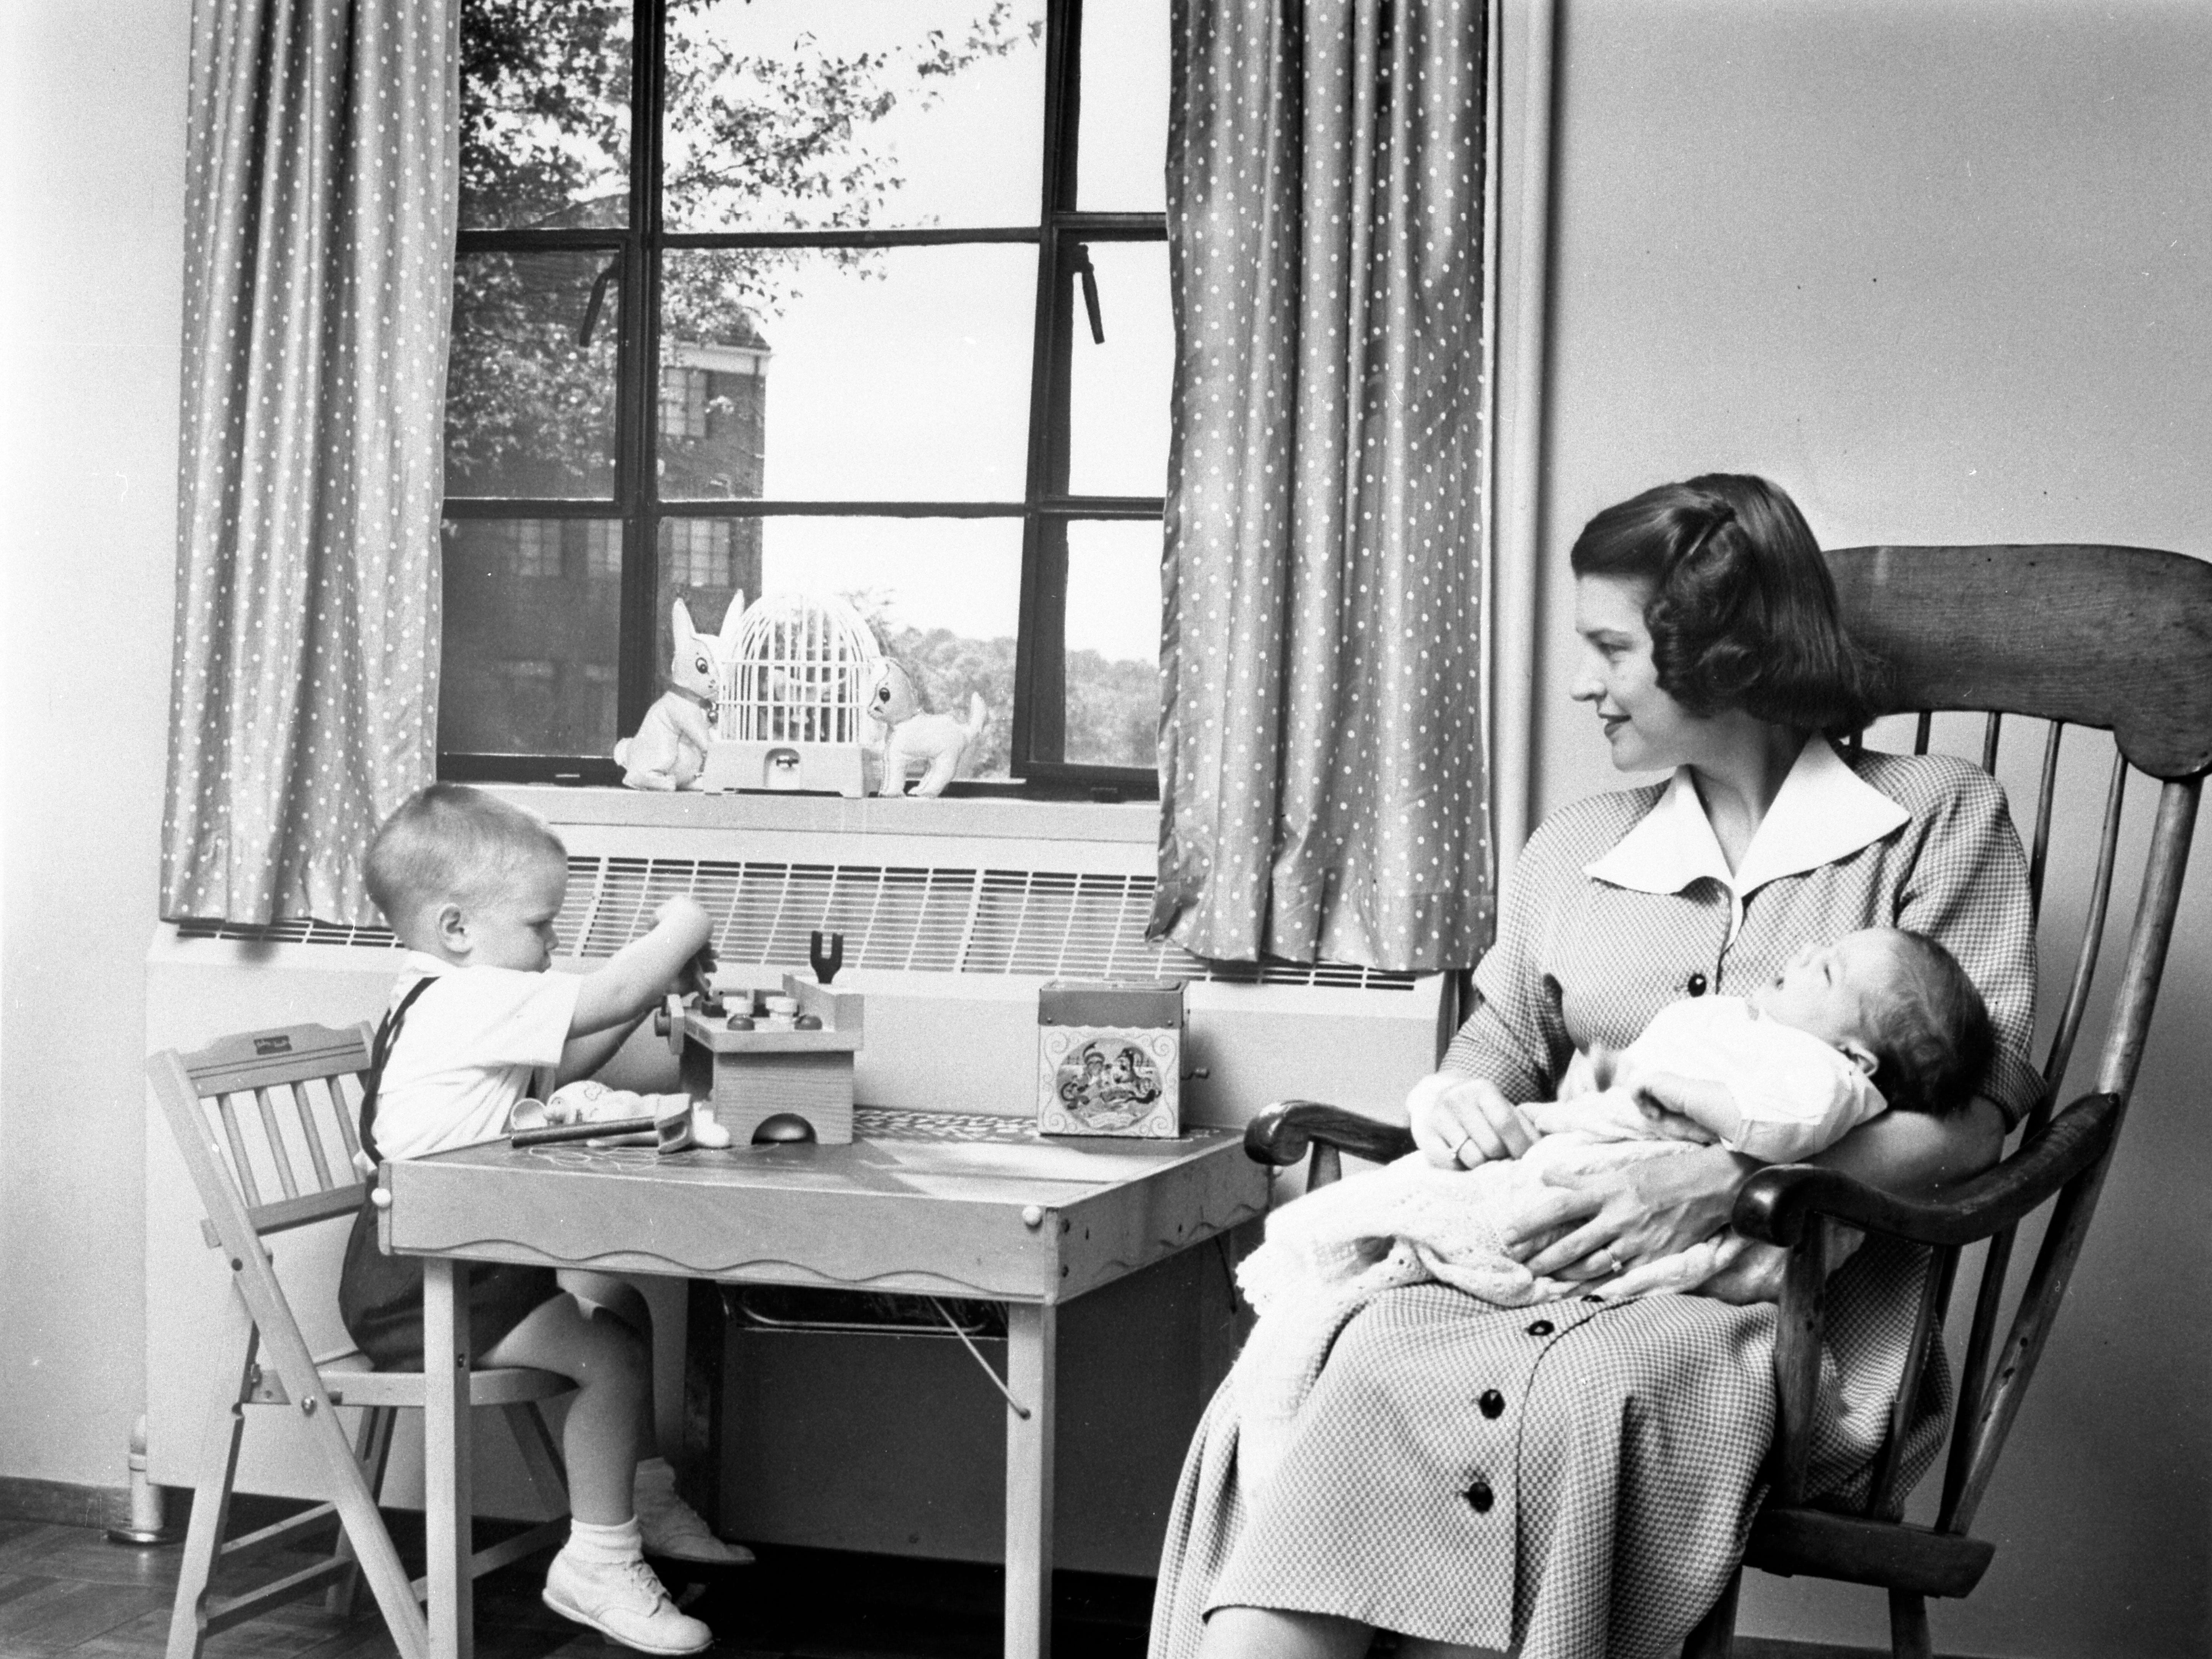 Betty, 34, with newborn Jack and two-year-old Michael in their apartment in Park Fairfax, VA, 1952.